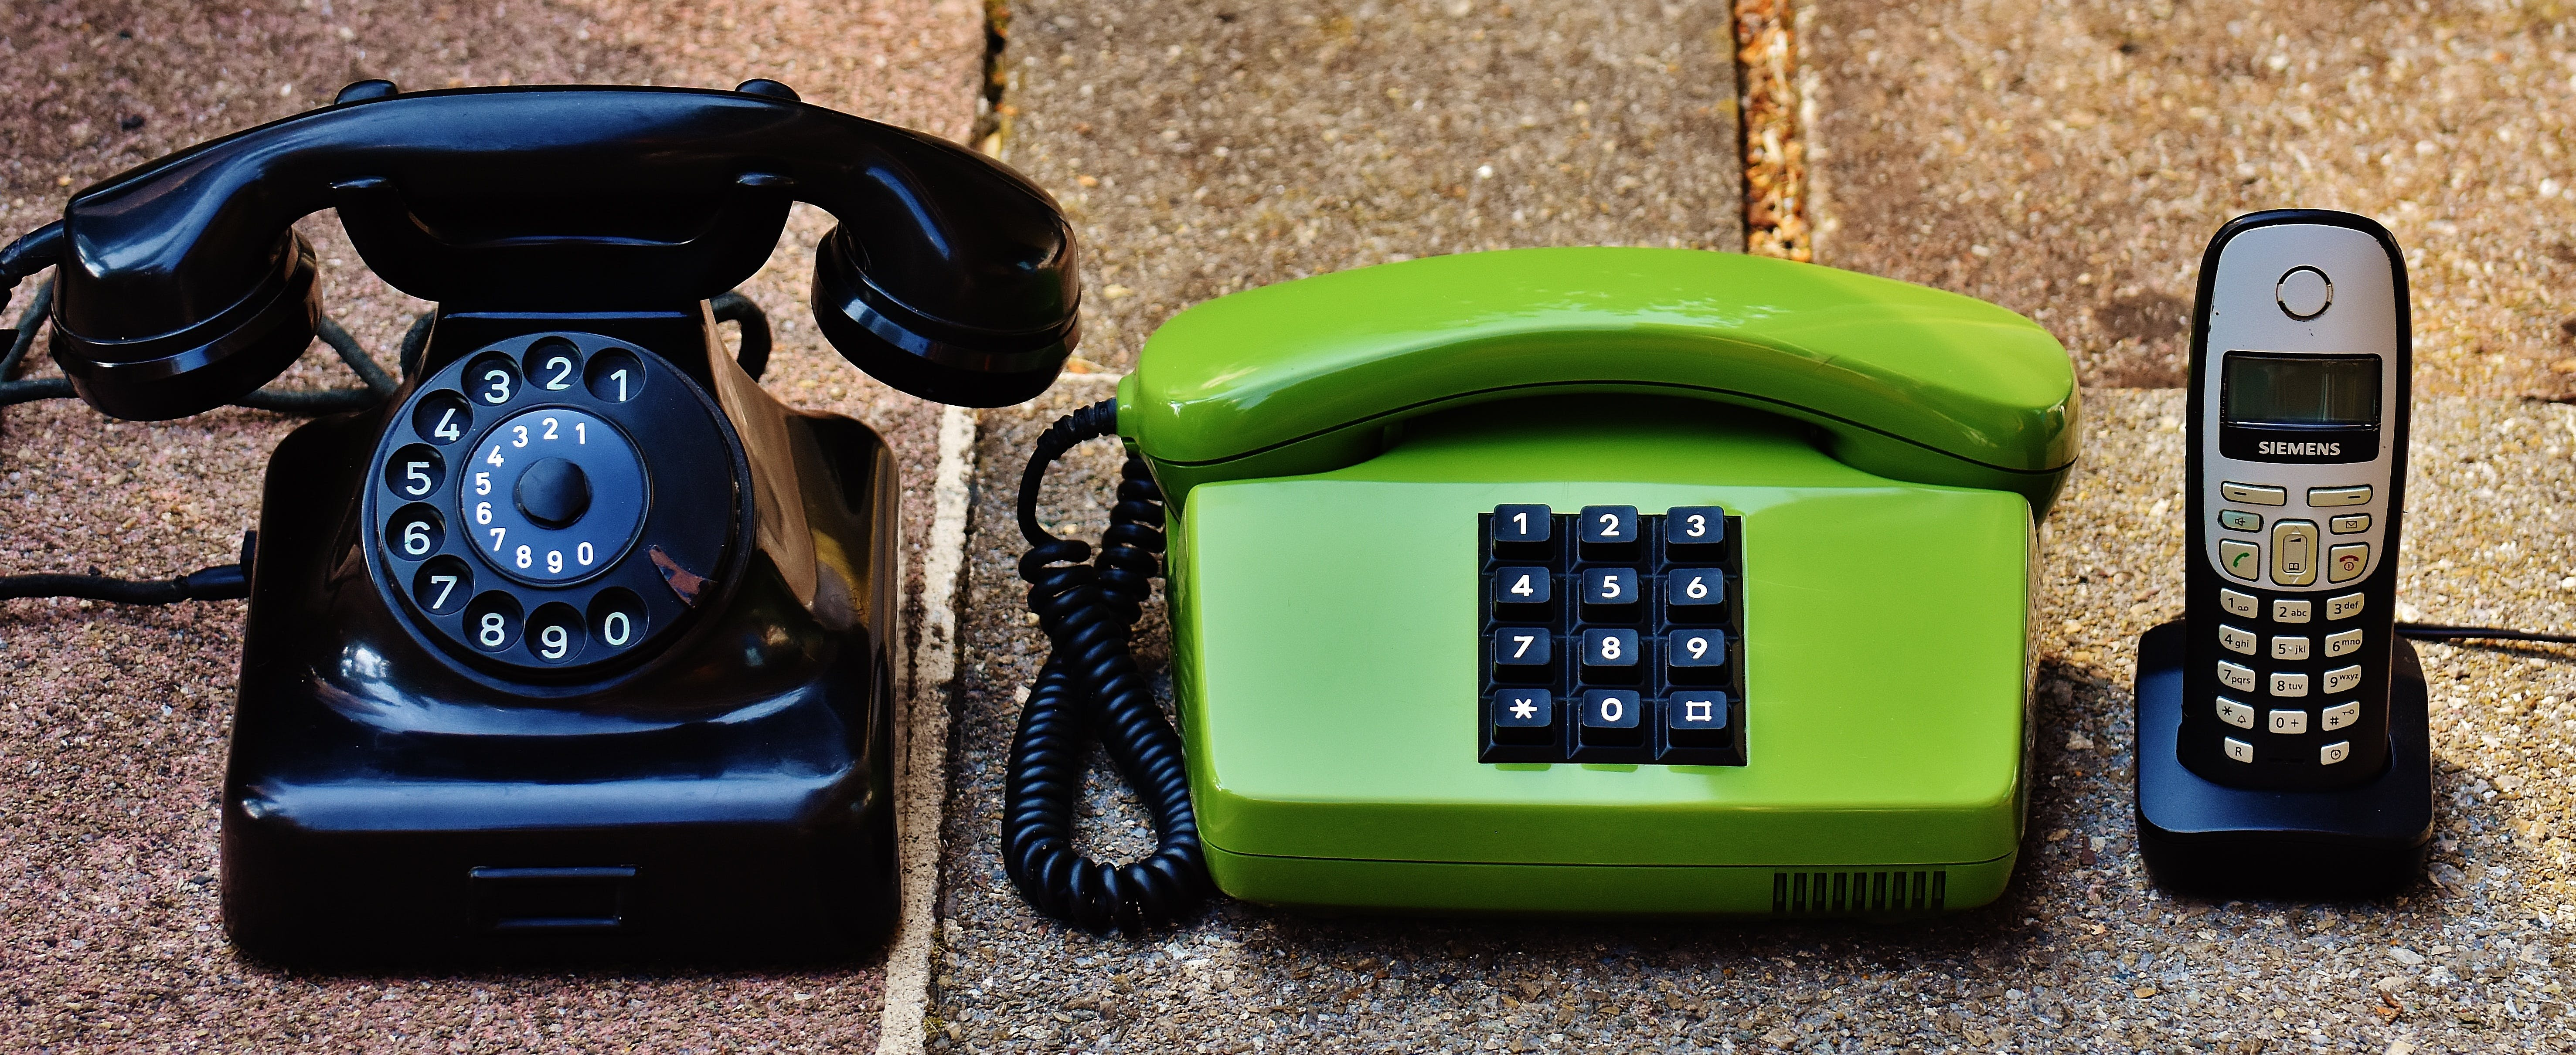 Two Green and Black Ip Phones